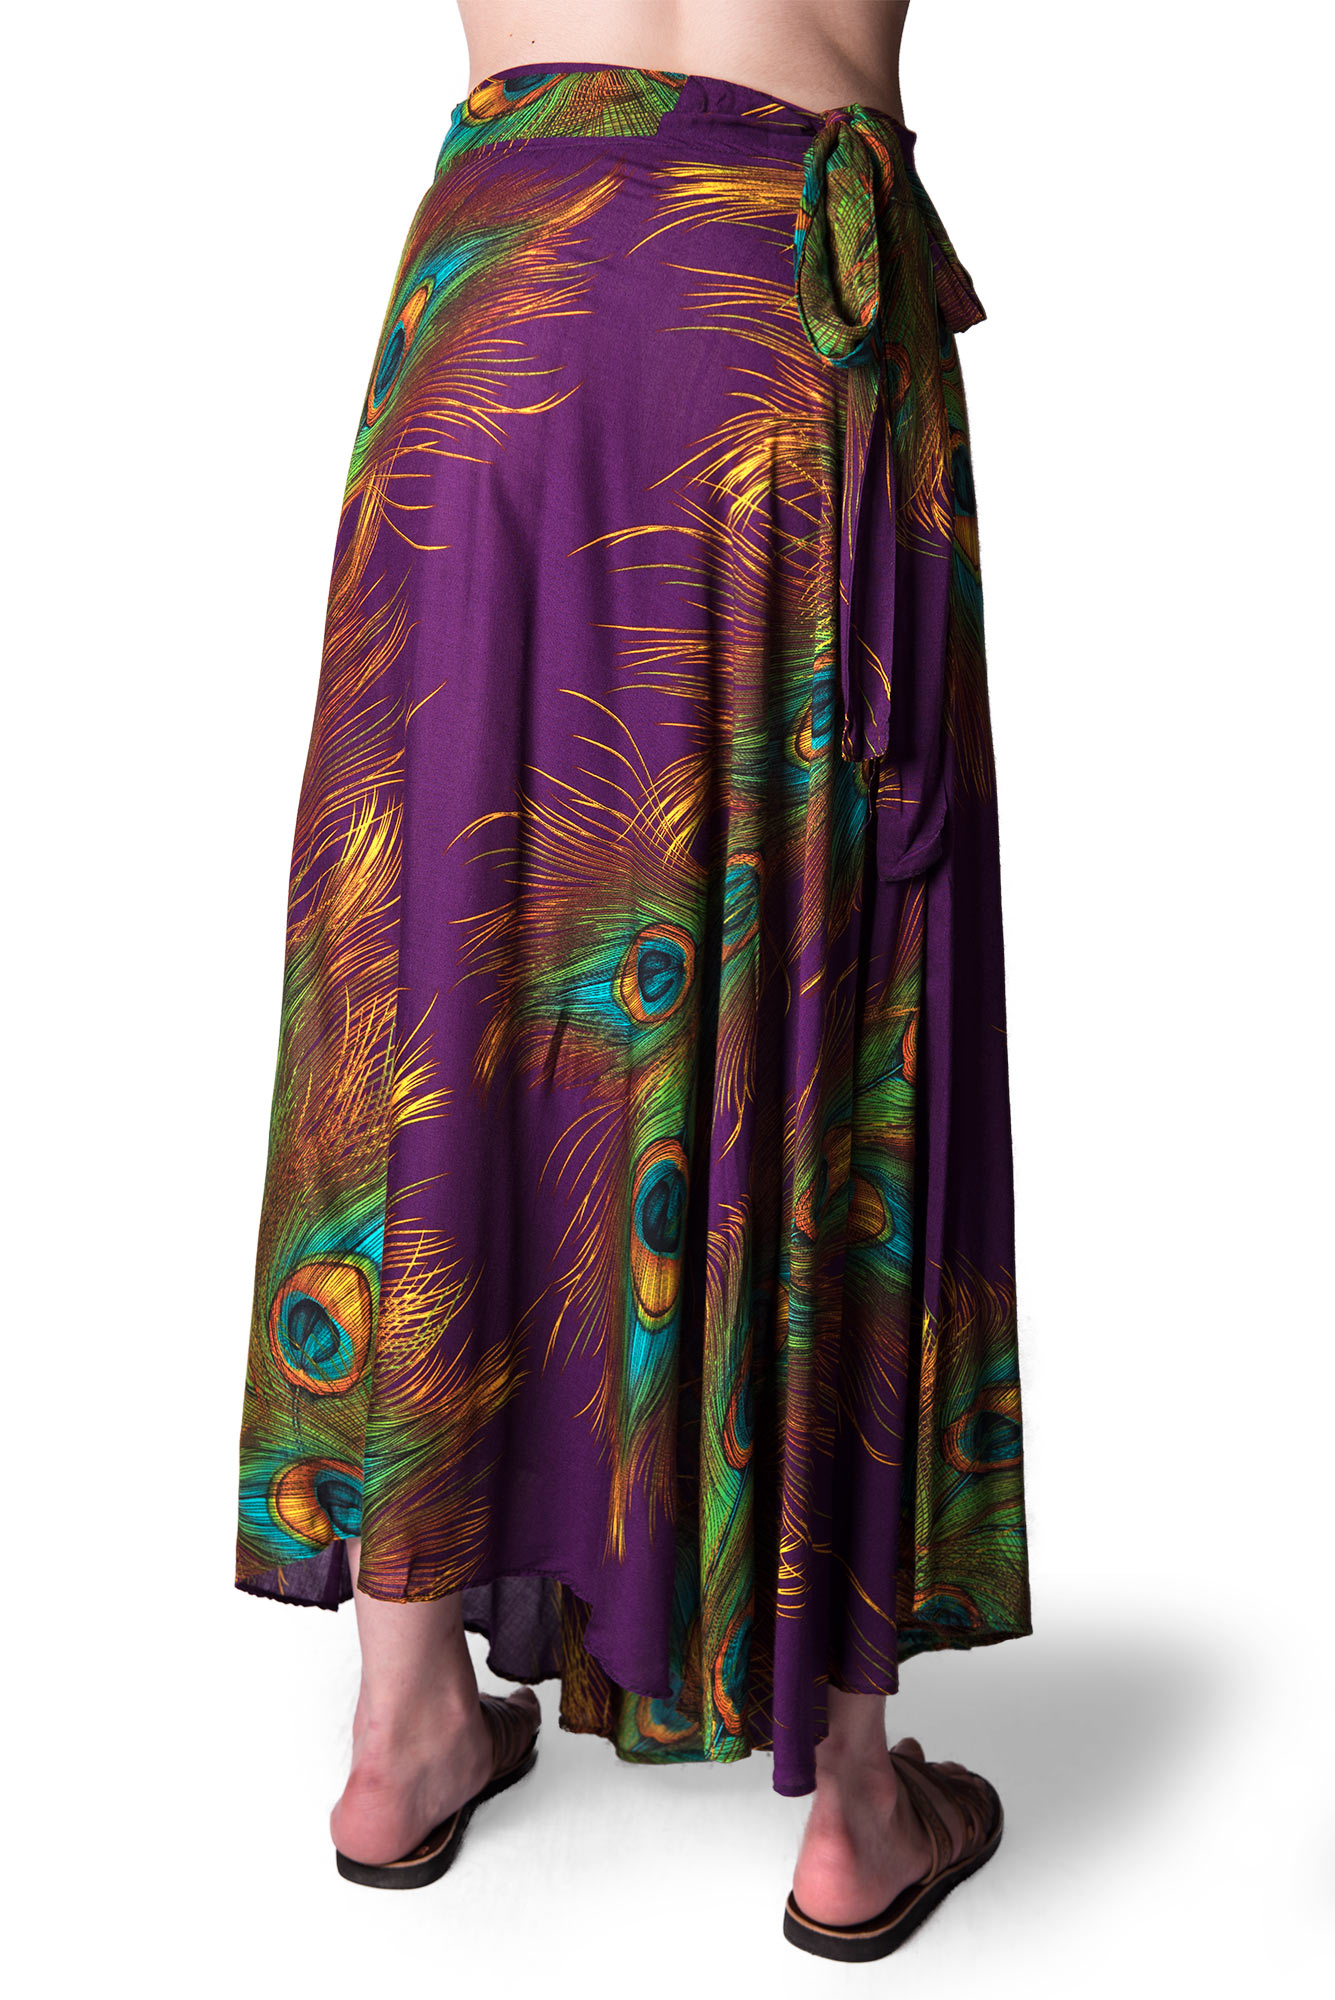 Long Wrap Skirt, Peacock Print, Purple